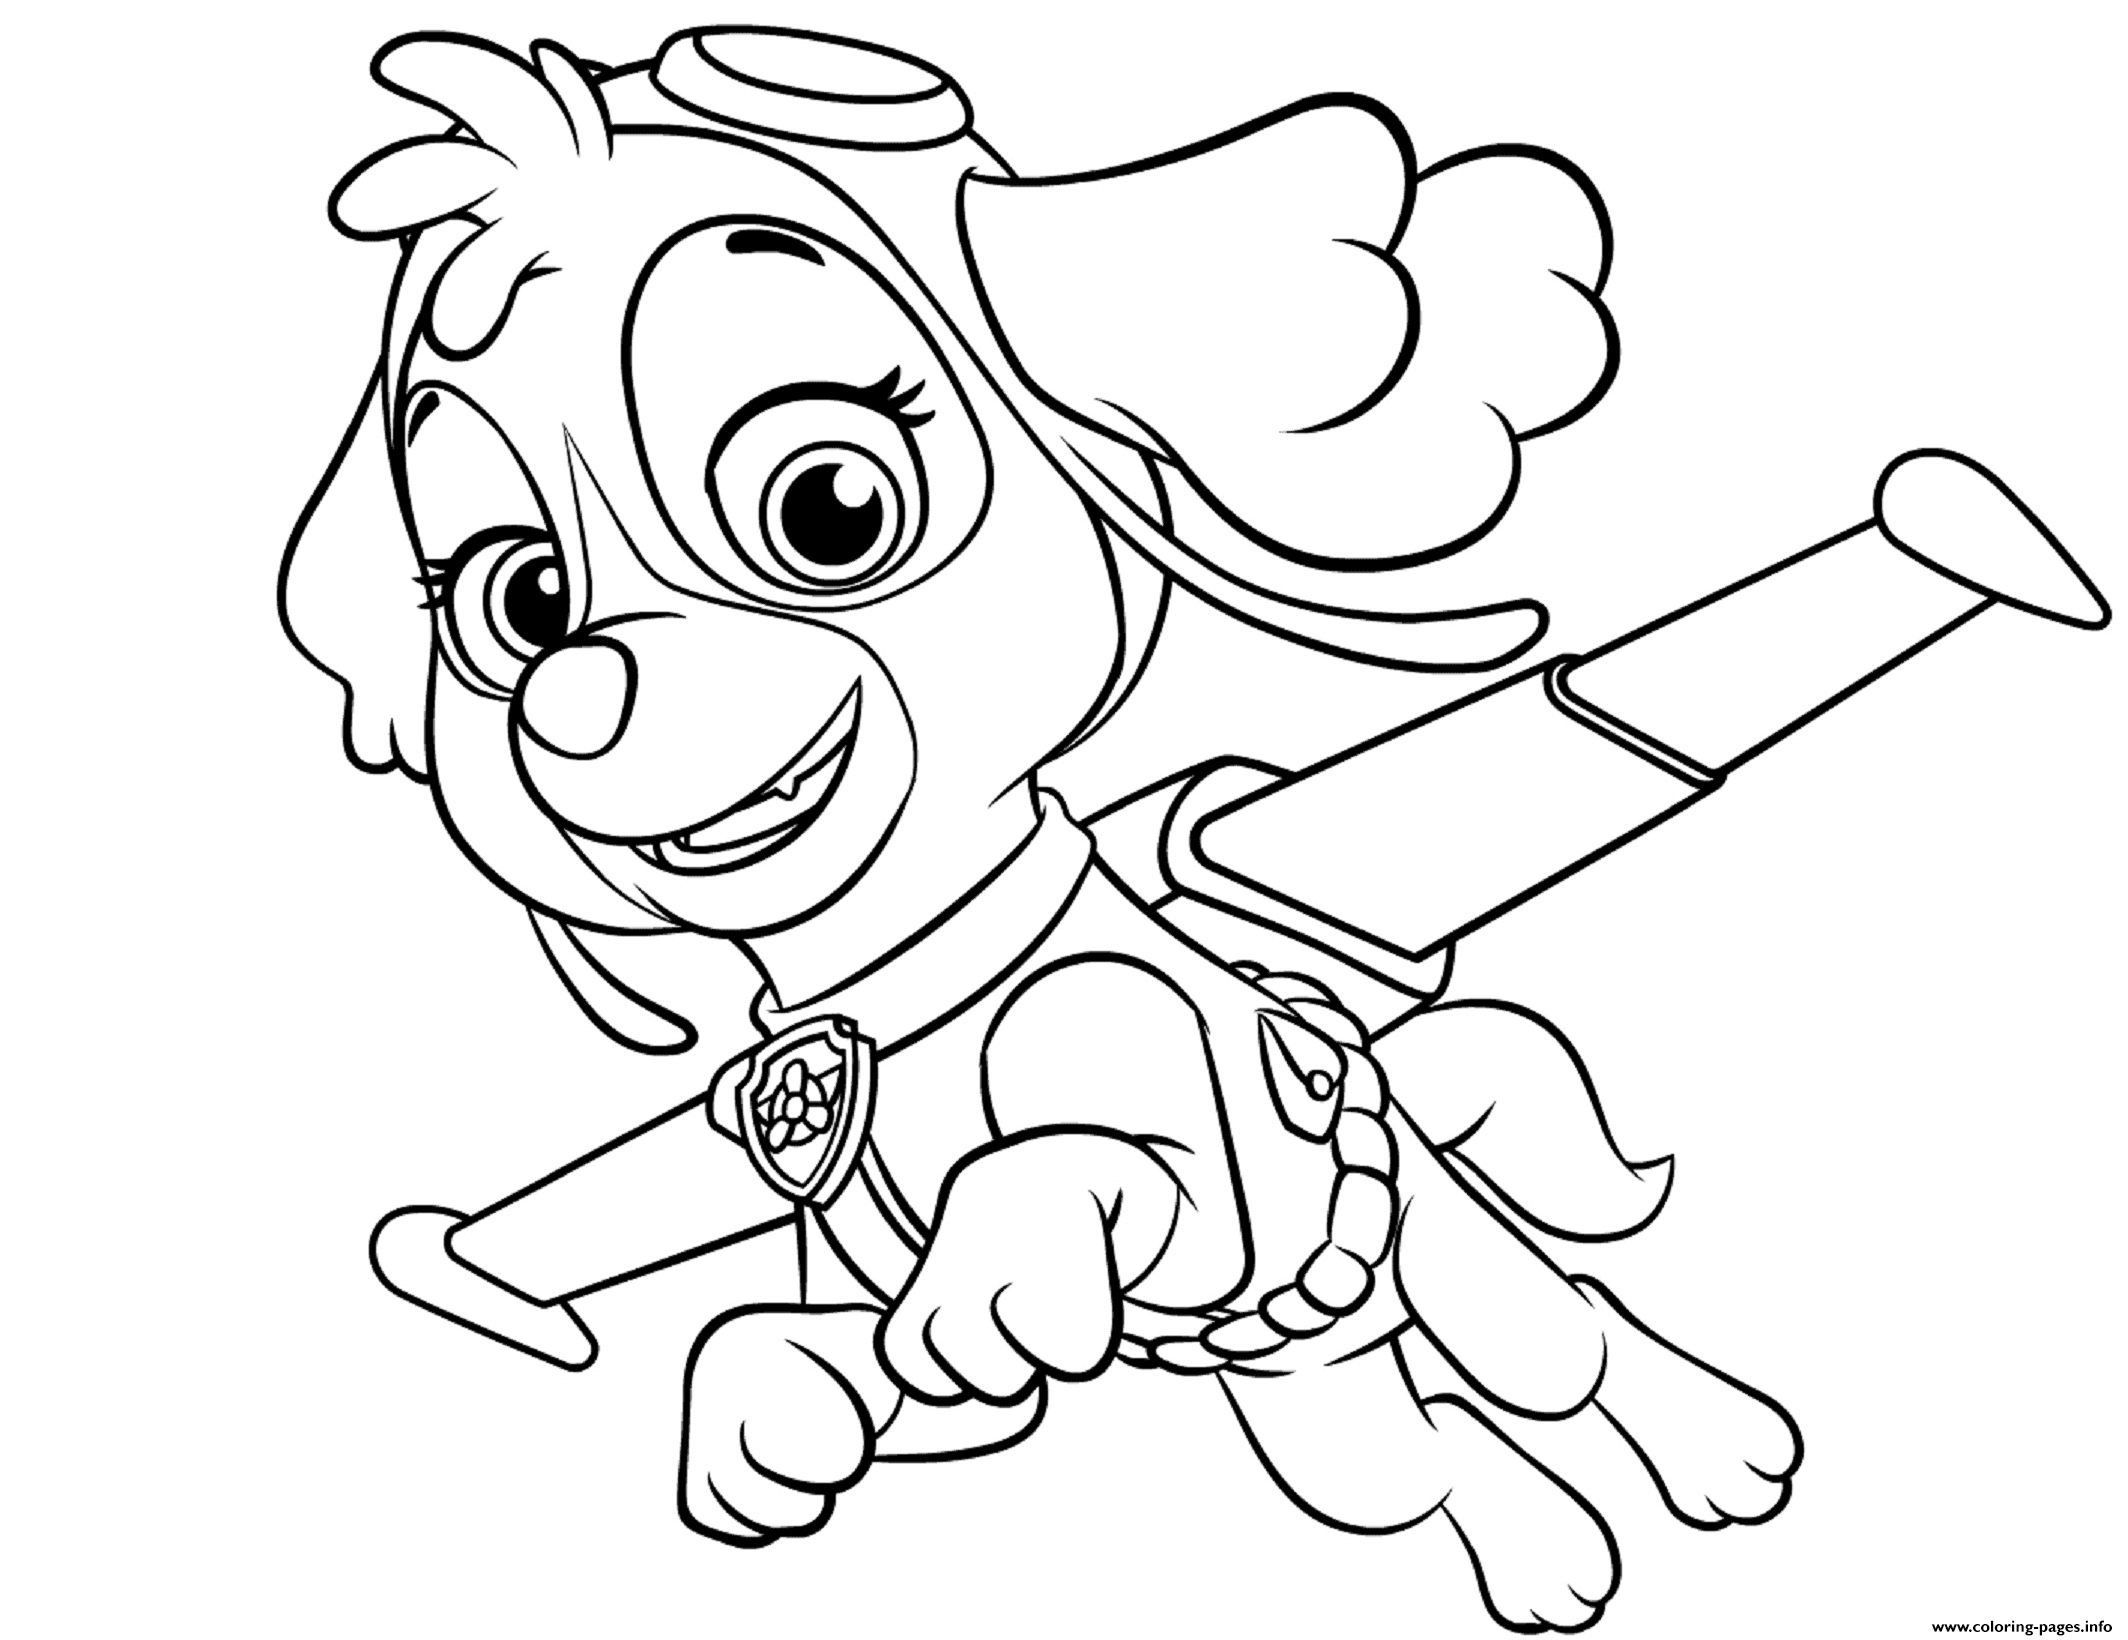 paw patrol coloring characters paw patrol coloring pages printable free coloring sheets patrol paw coloring characters